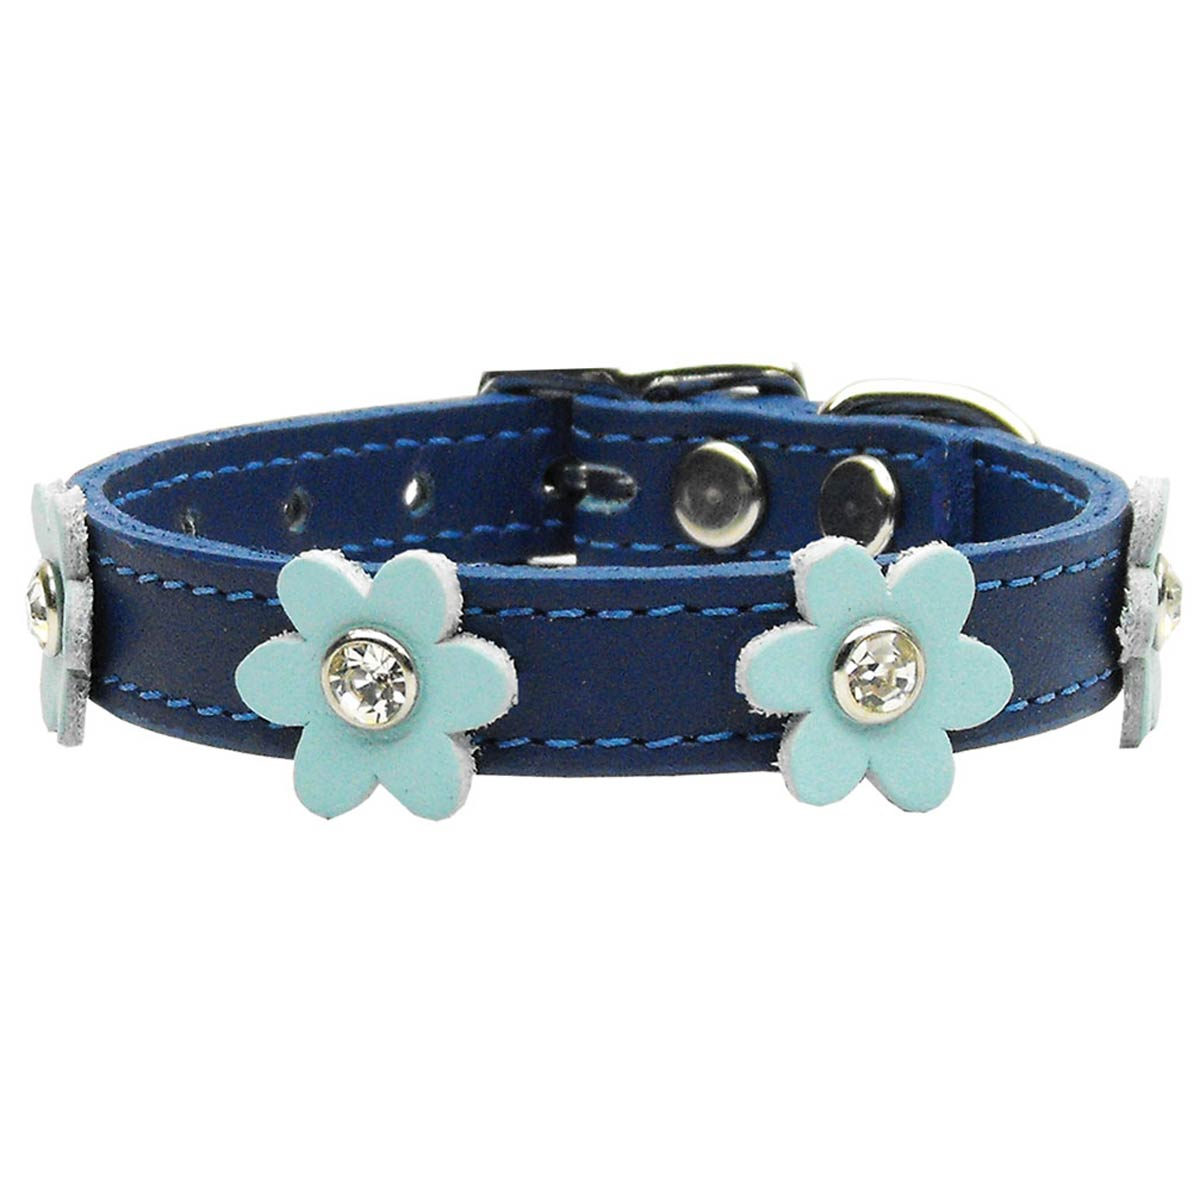 The Control of Dogs Order states that all dogs need to wear a collar with the owner's name and address. Personalised embroidered dog collars fall short of this requirement because most can only fit a phone number and a name.